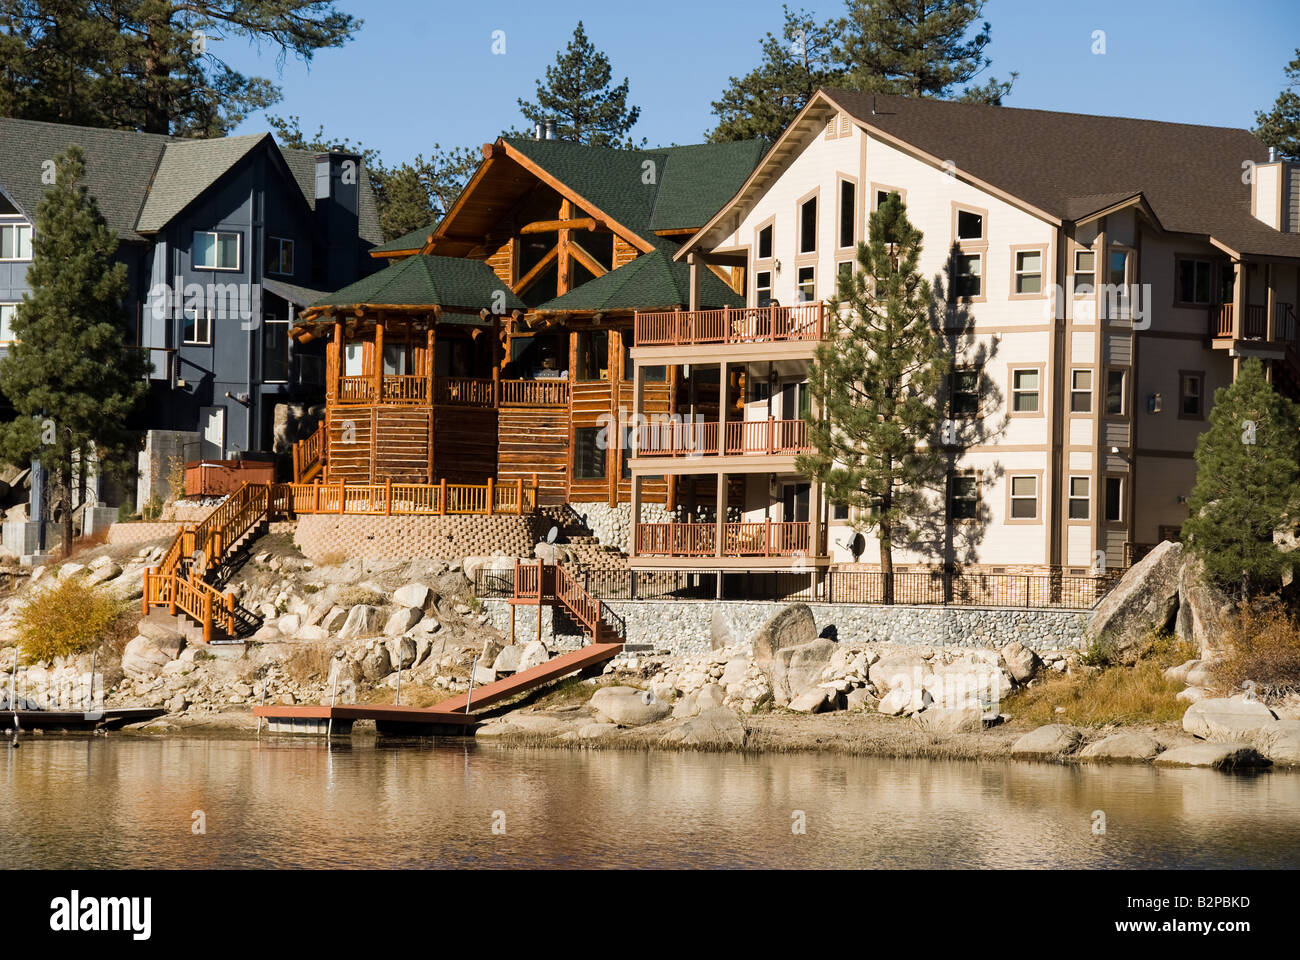 ca property hotel gallery bear com big rentals us resort of town lake cabins booking this image